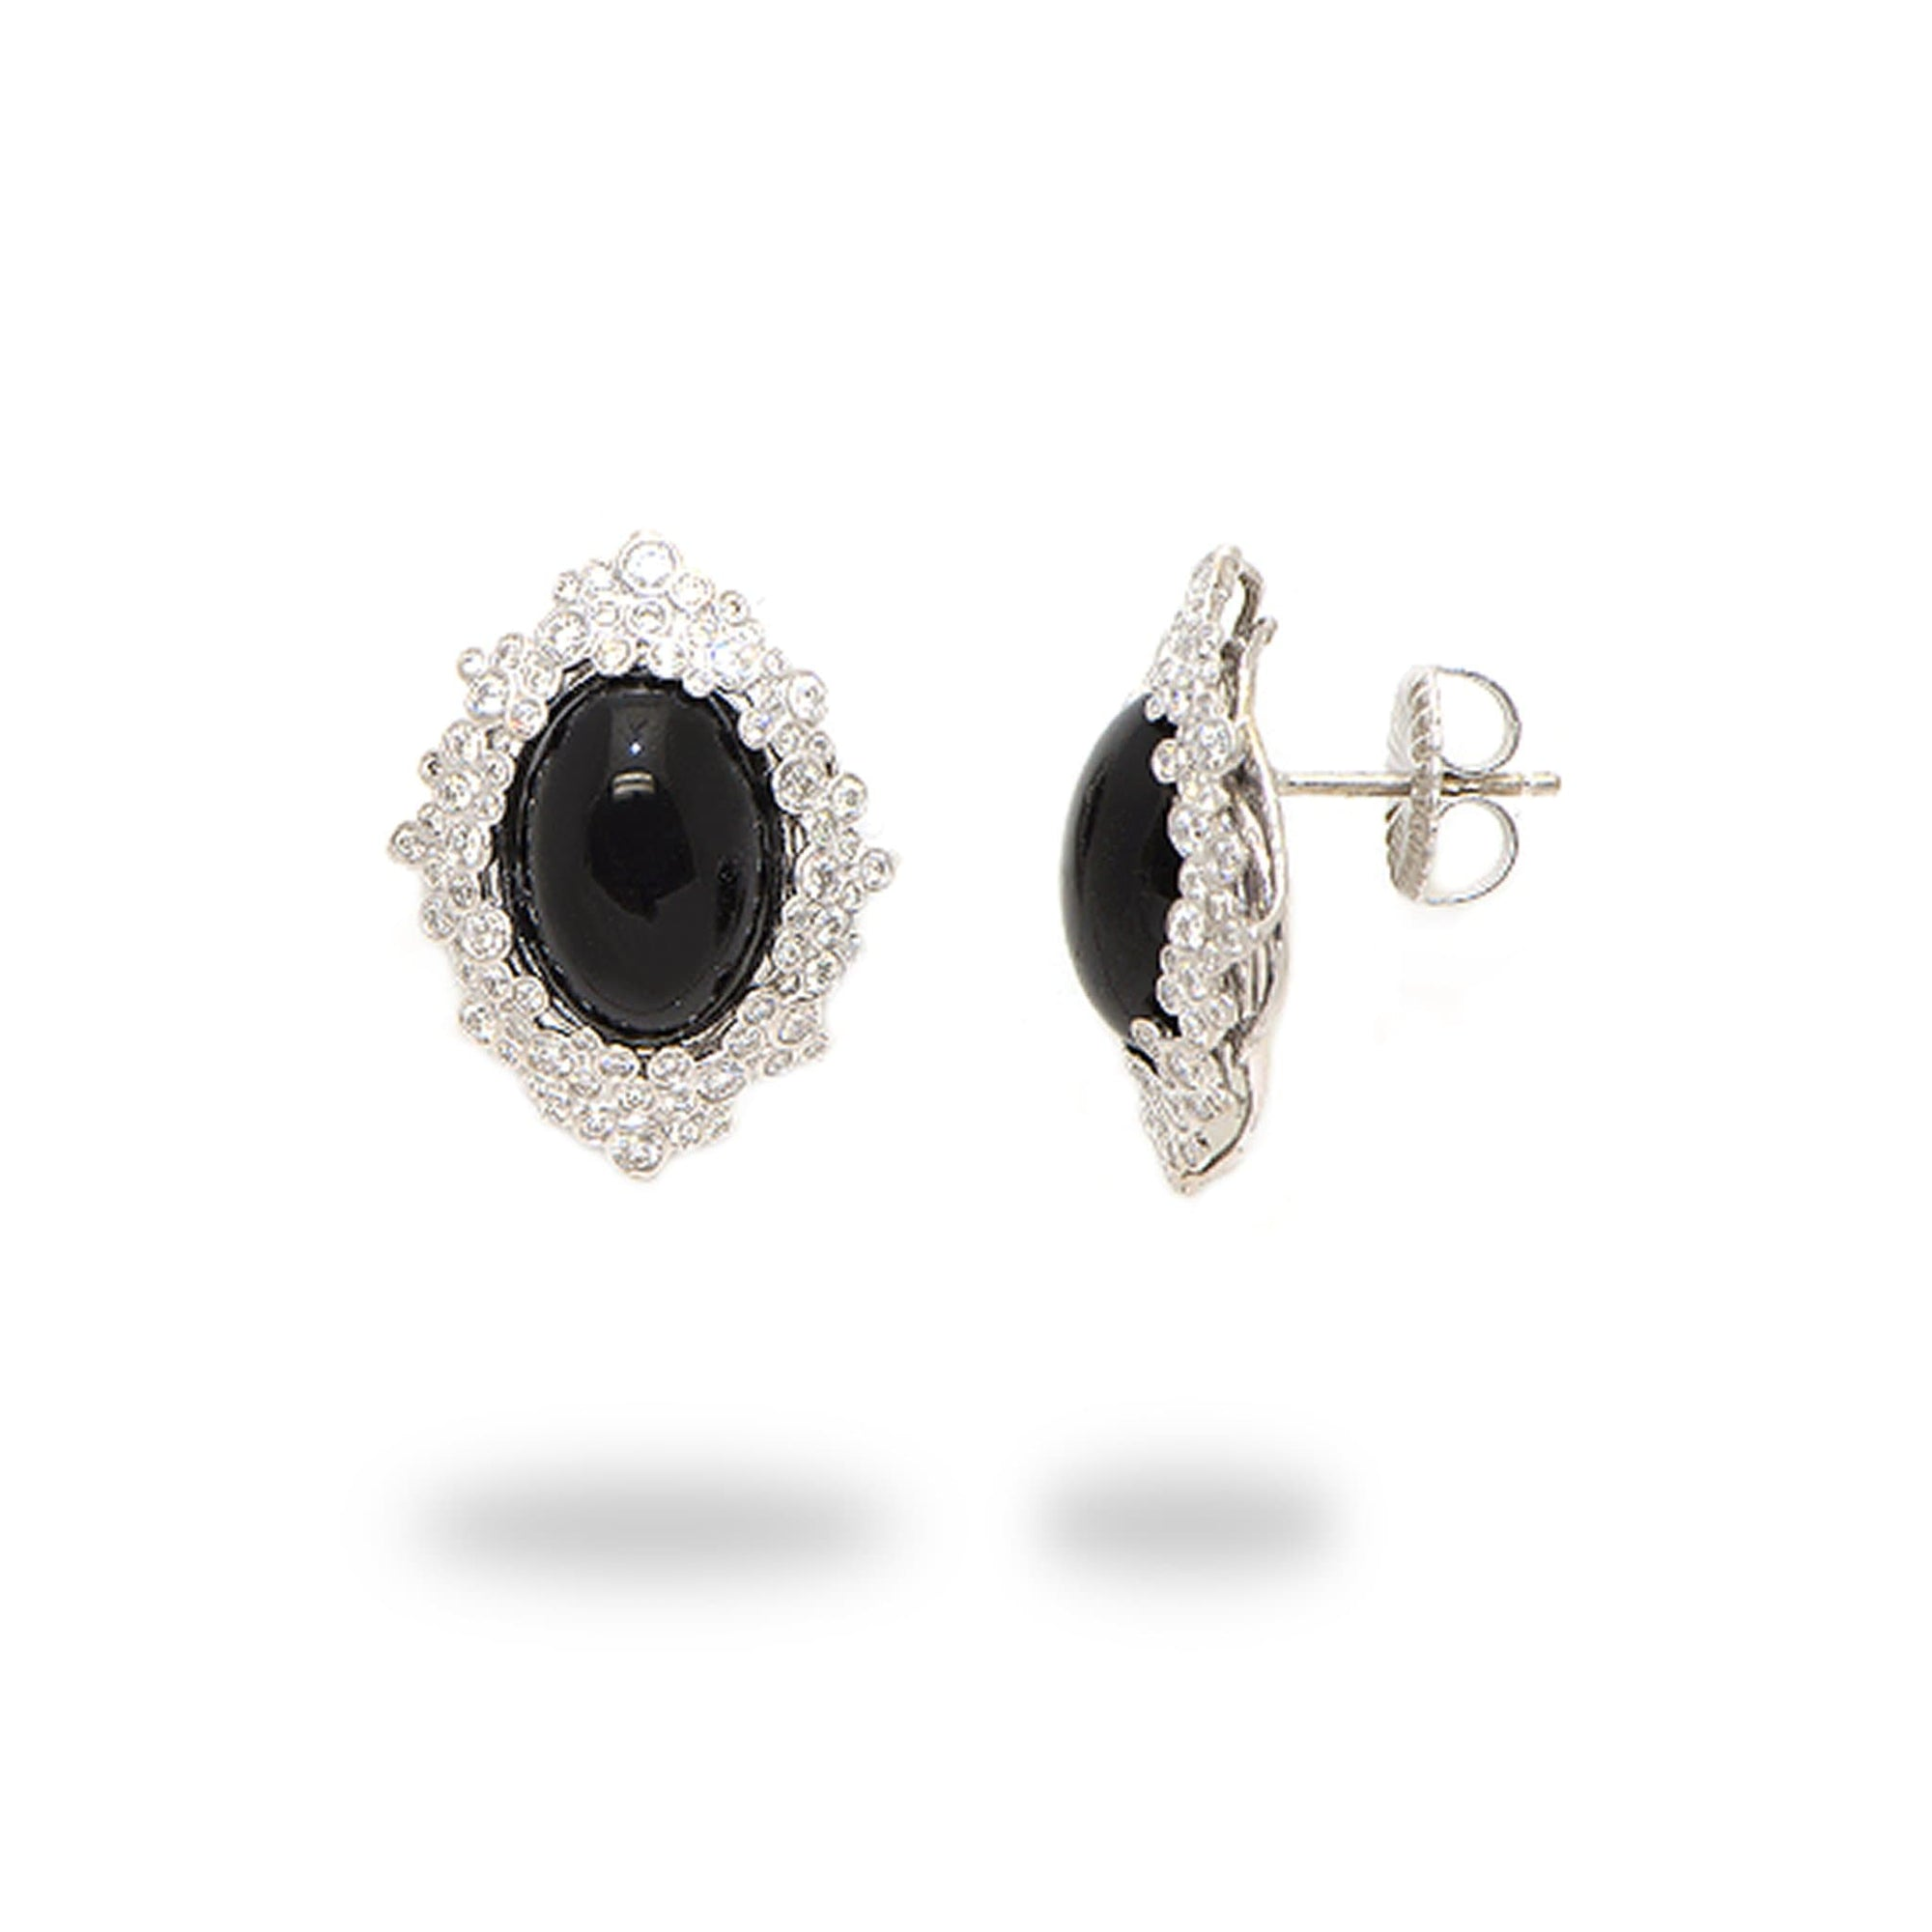 Hawaiian Black Coral Earrings with Diamonds in 18K White Gold (14-10mm) - Maui Divers Jewelry